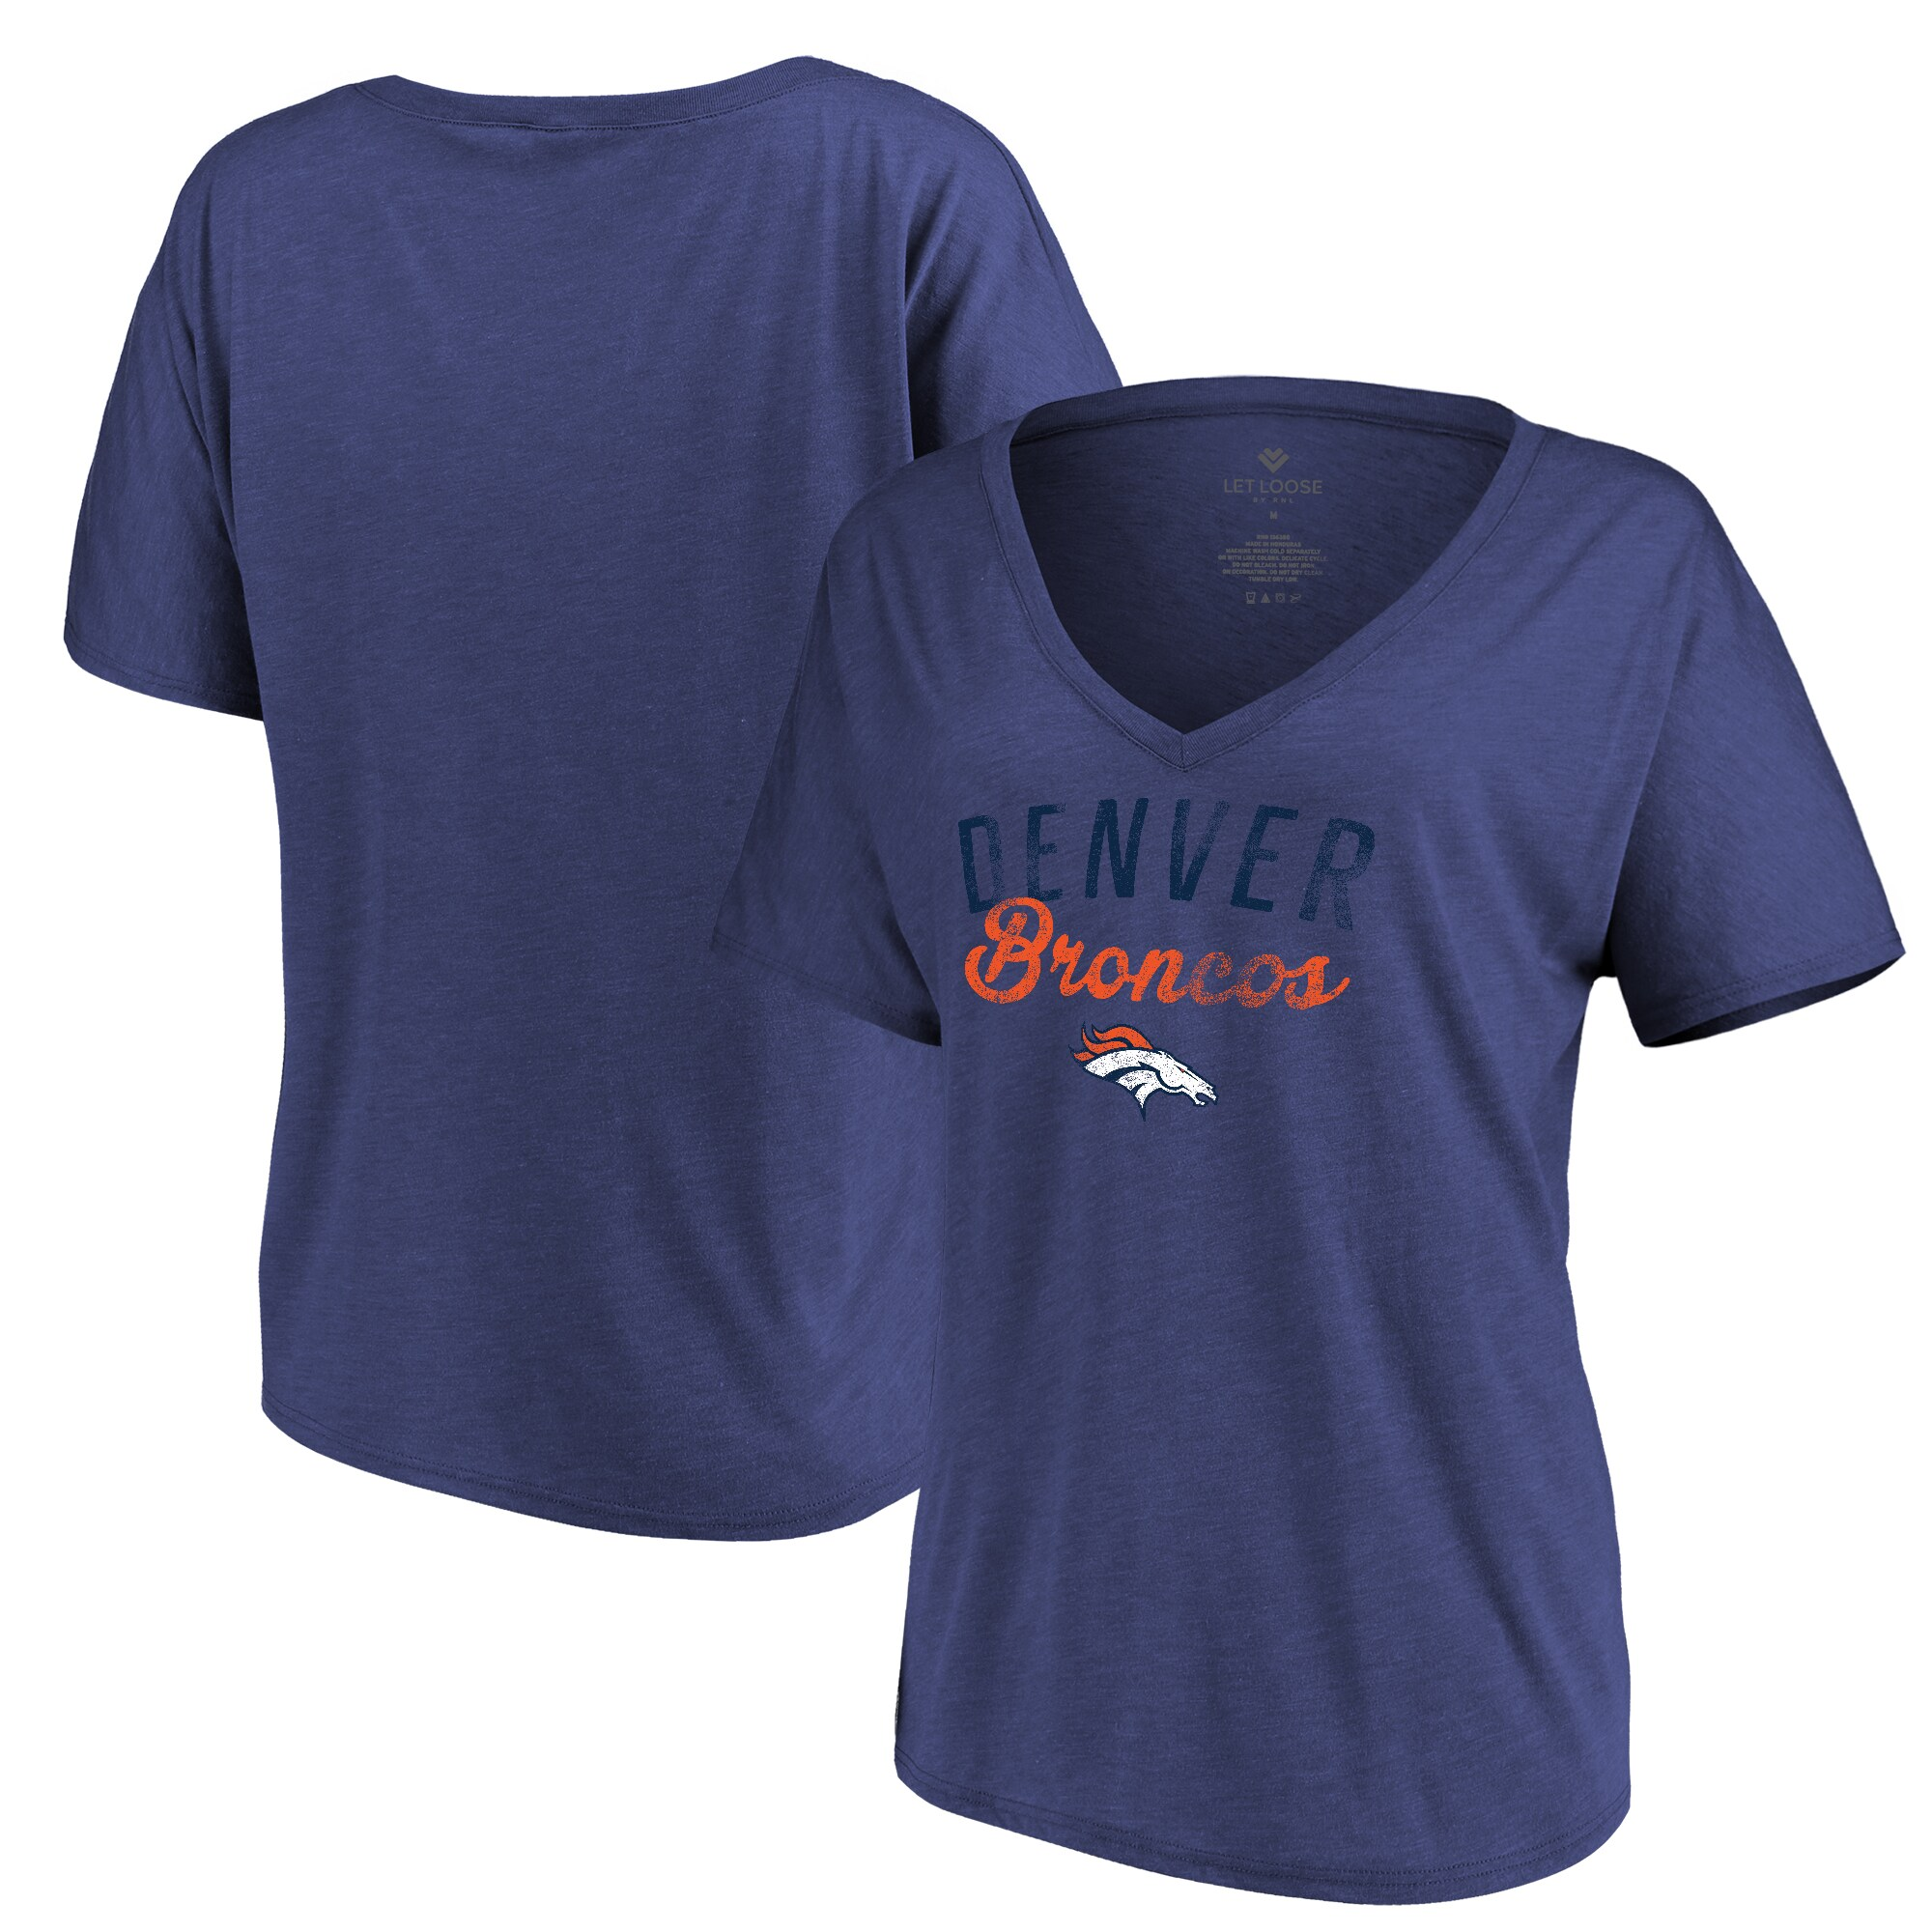 Denver Broncos Let Loose by RNL Women's Endless V-Neck T-Shirt - Heathered Navy